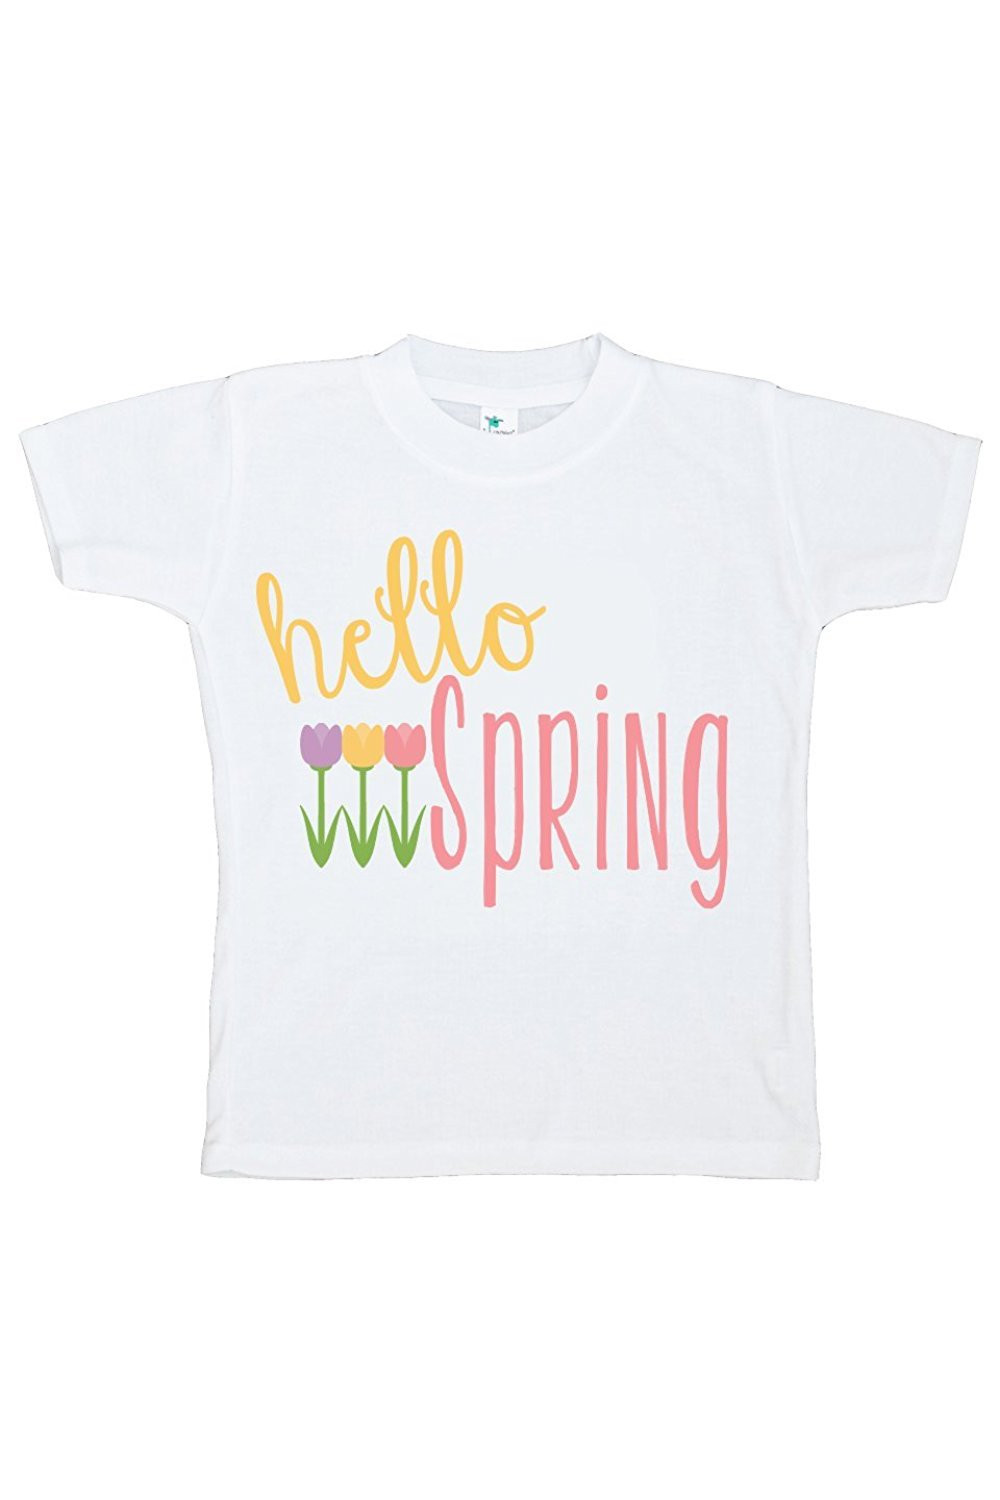 Custom Party Shop Hello Spring Girls' Novelty Tshirt - Yellow and green / 5/6T Shirt